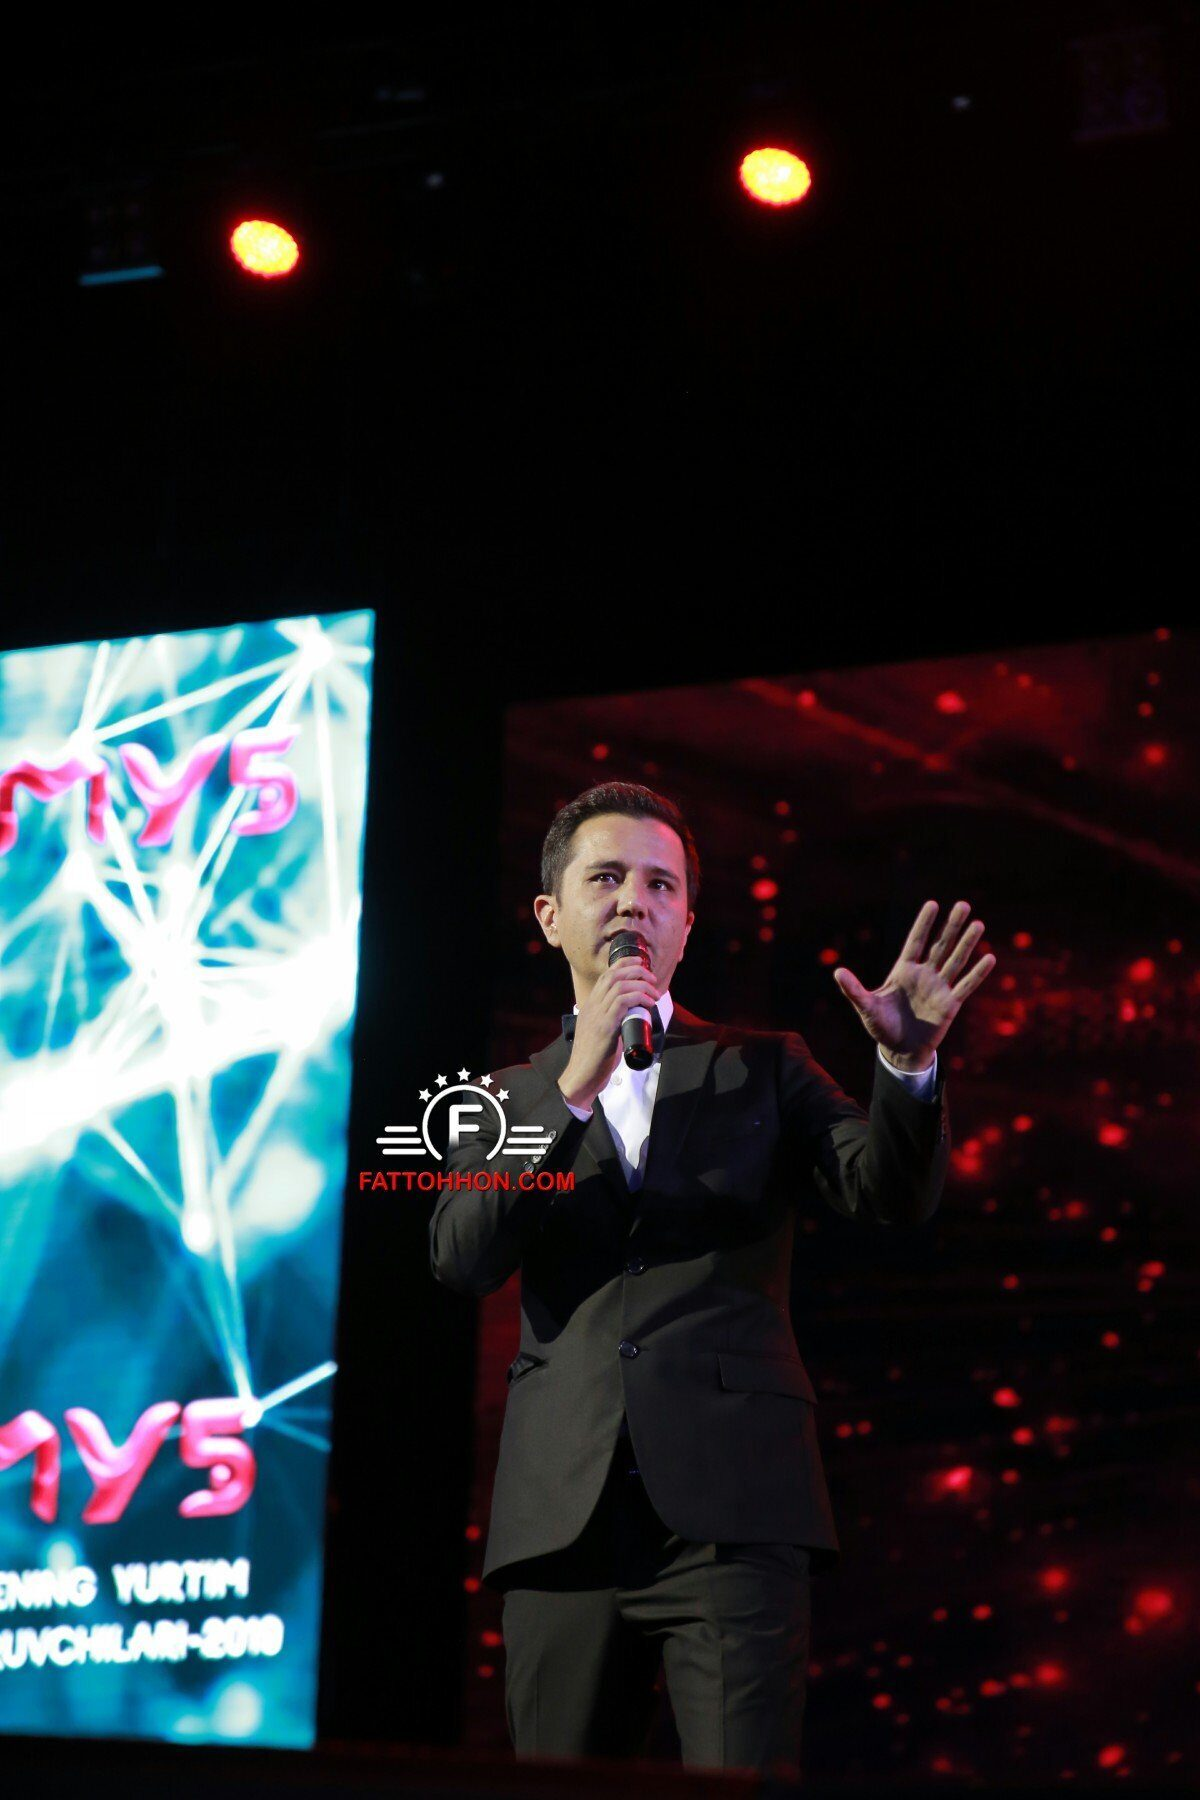 photo_konsert 25 (14)